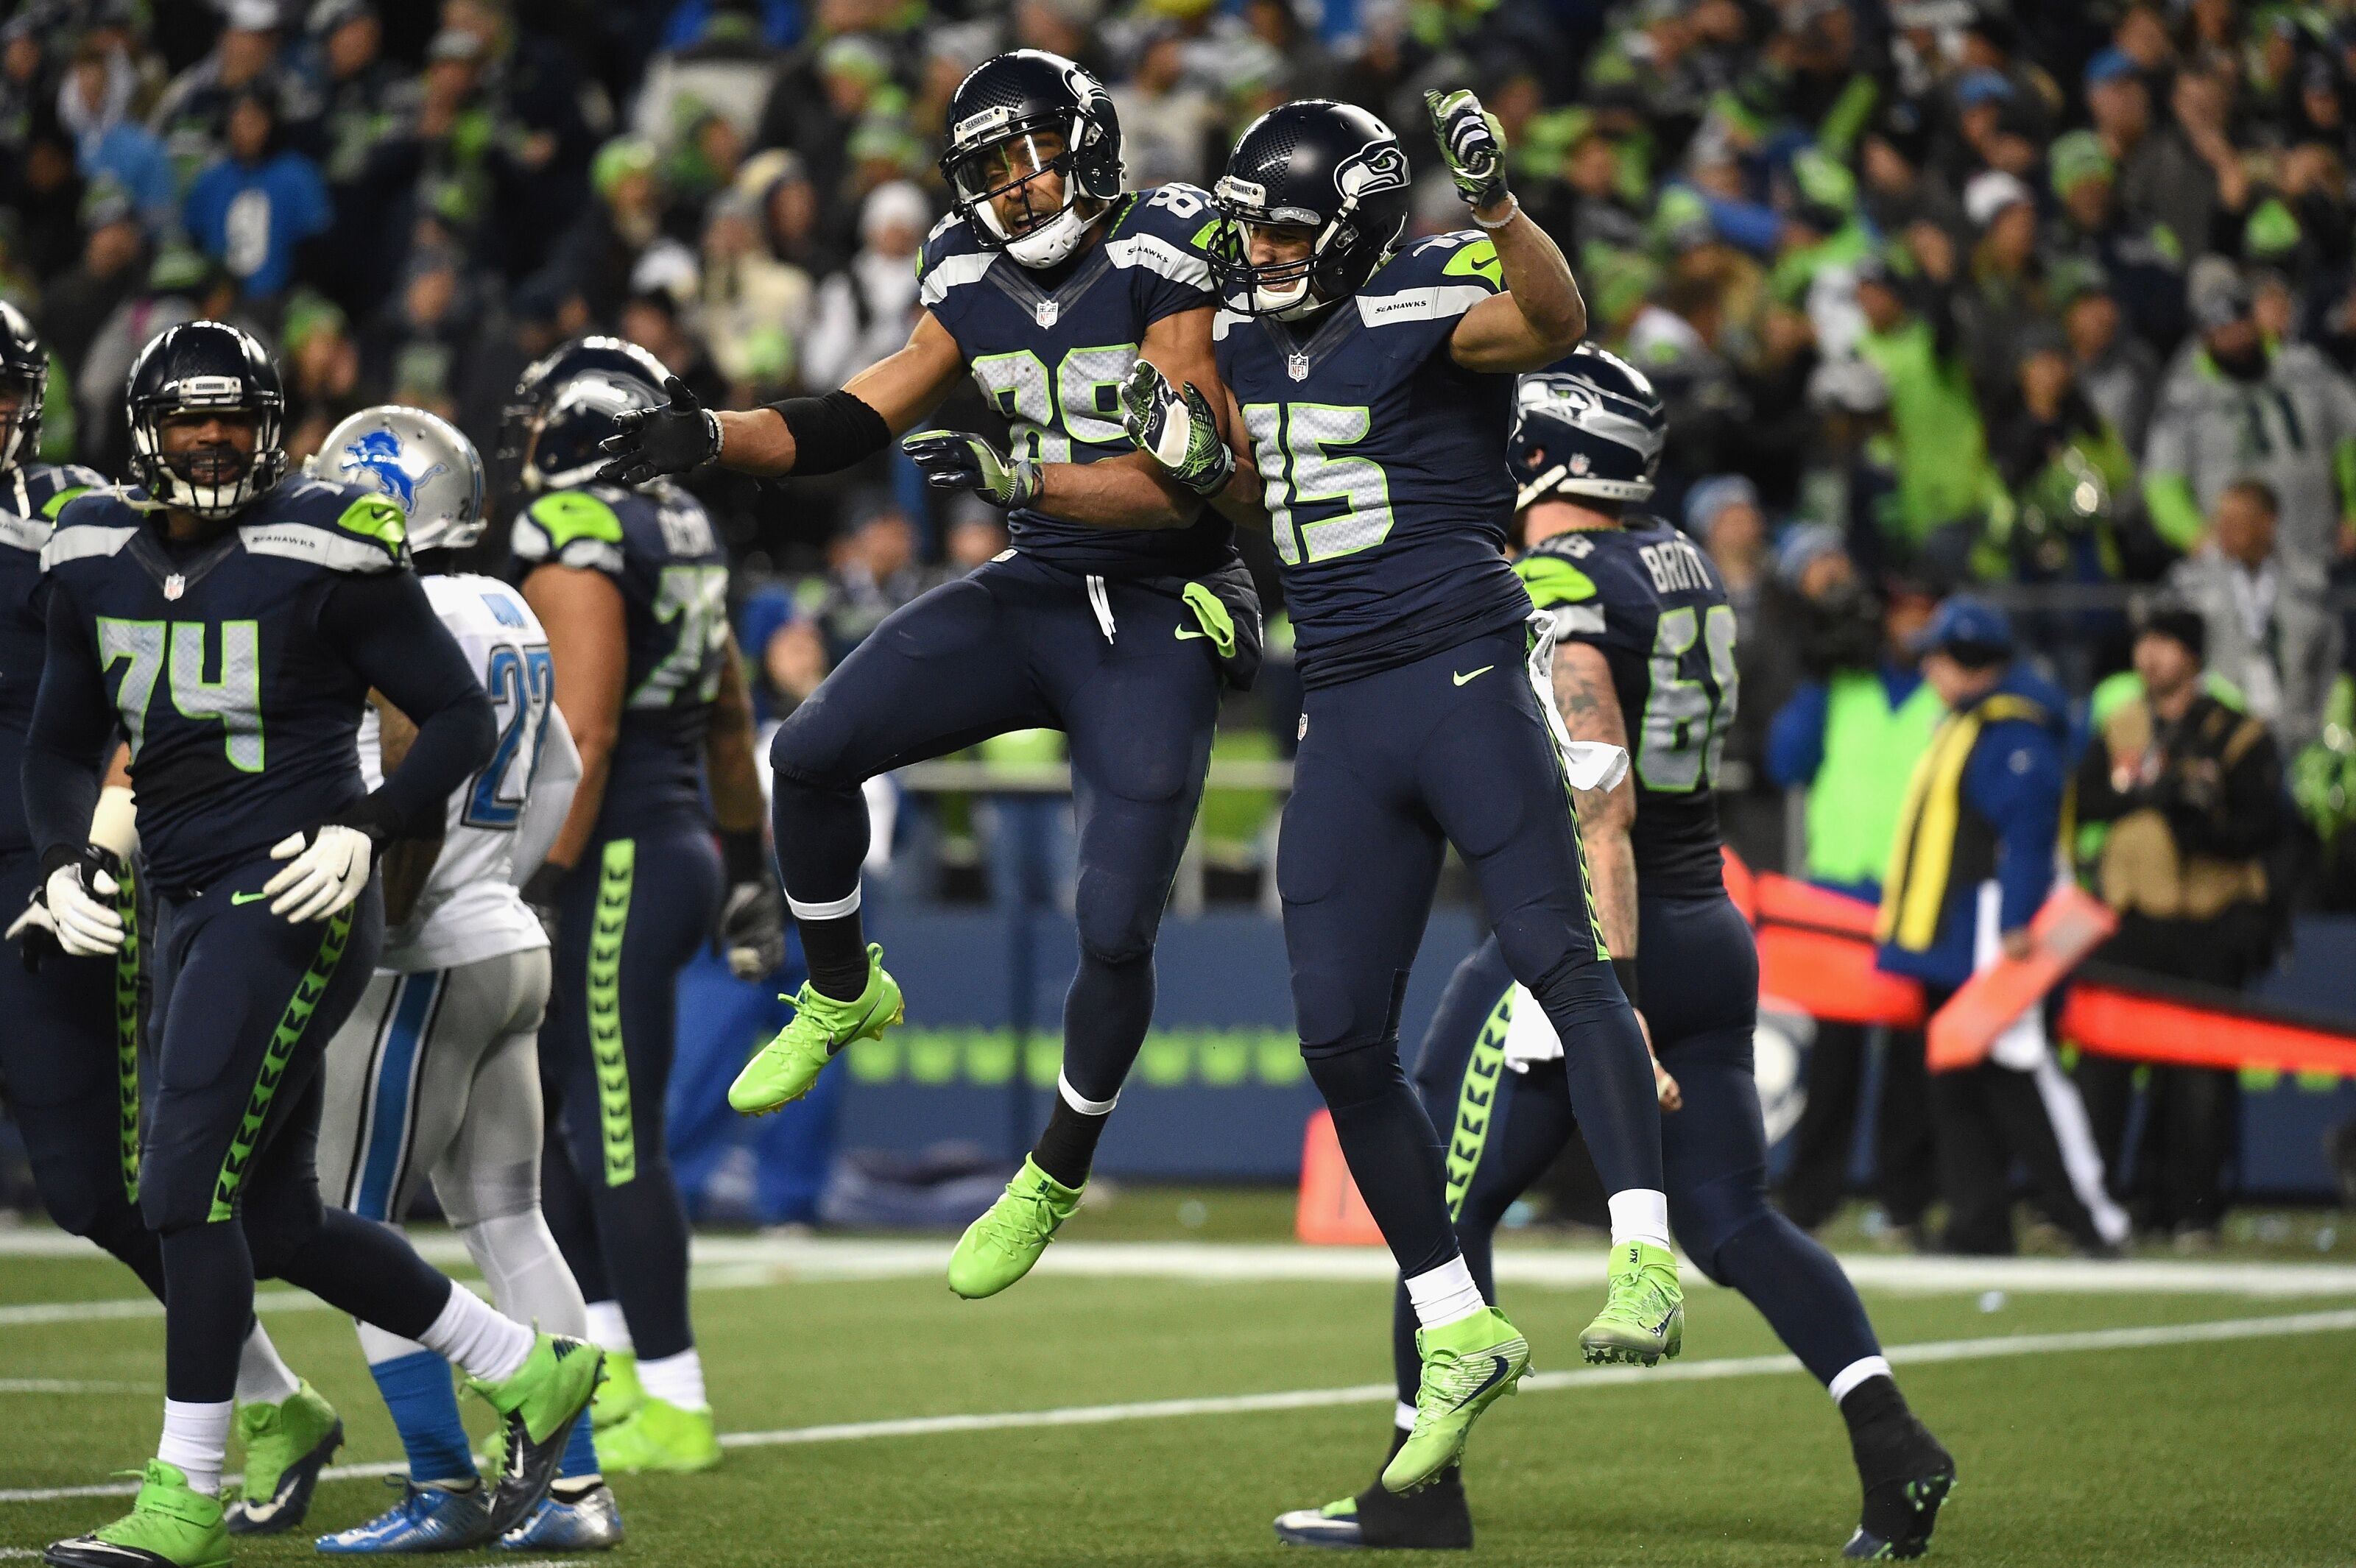 Seahawks re-signing Jermaine Kearse might be smart move